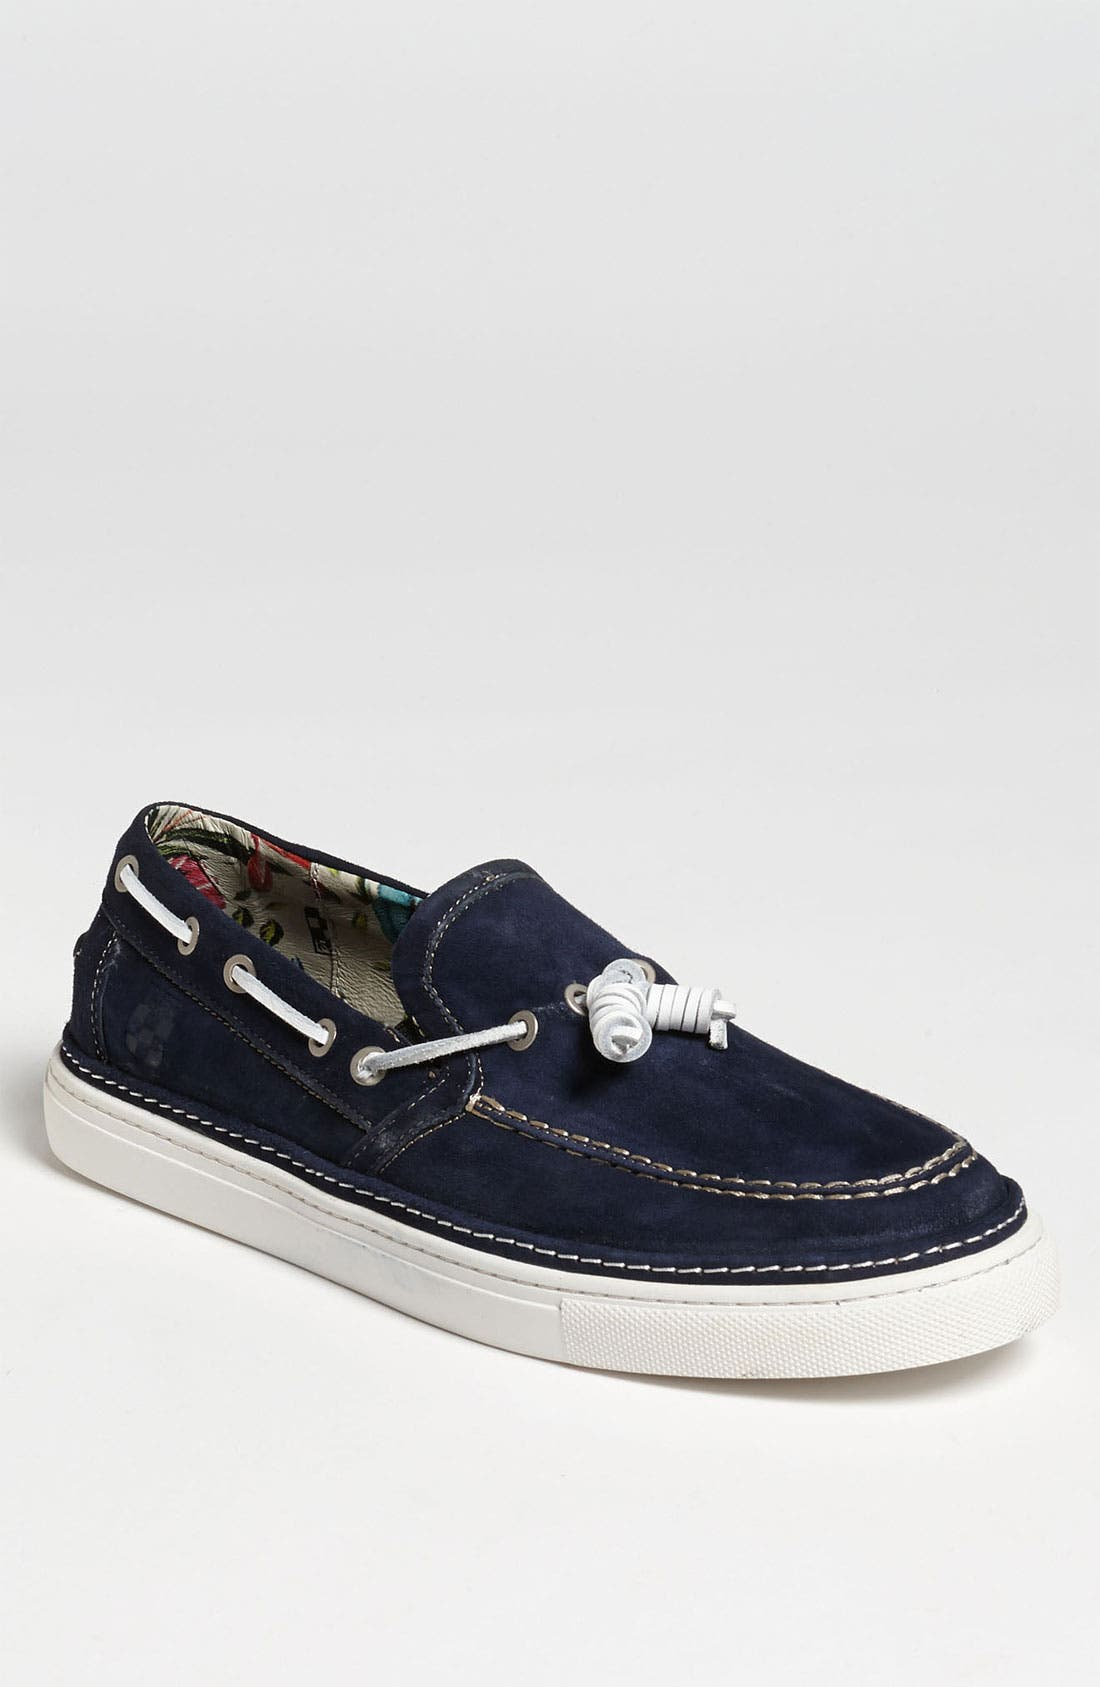 Alternate Image 1 Selected - Vince Camuto 'Tesino' Boat Shoe